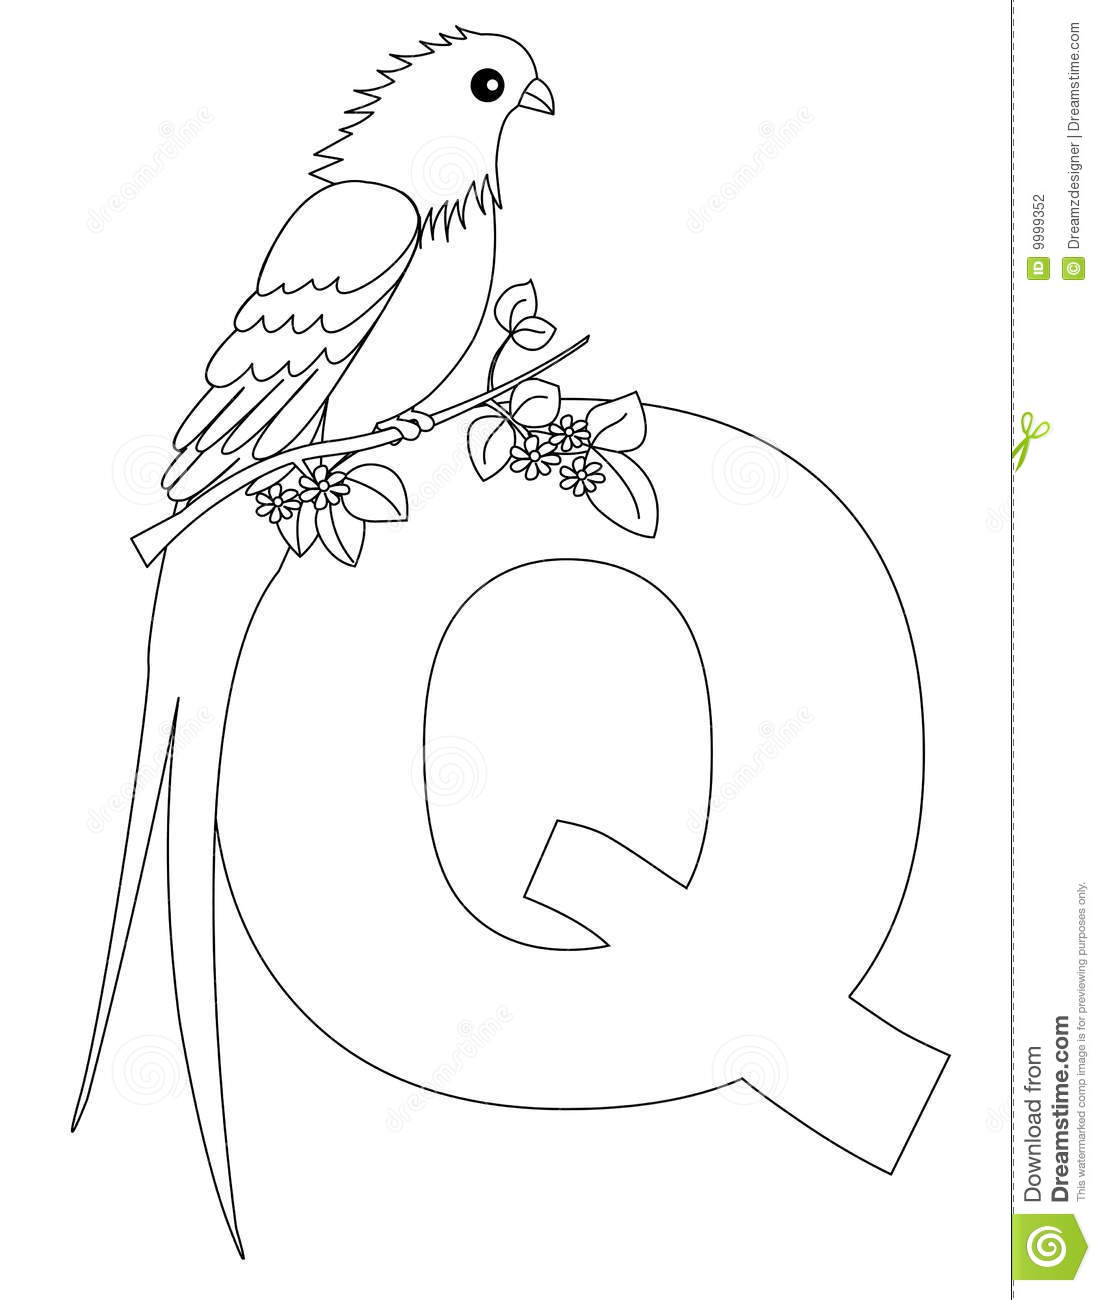 Download Animal Alphabet Q Coloring Page Stock Vector